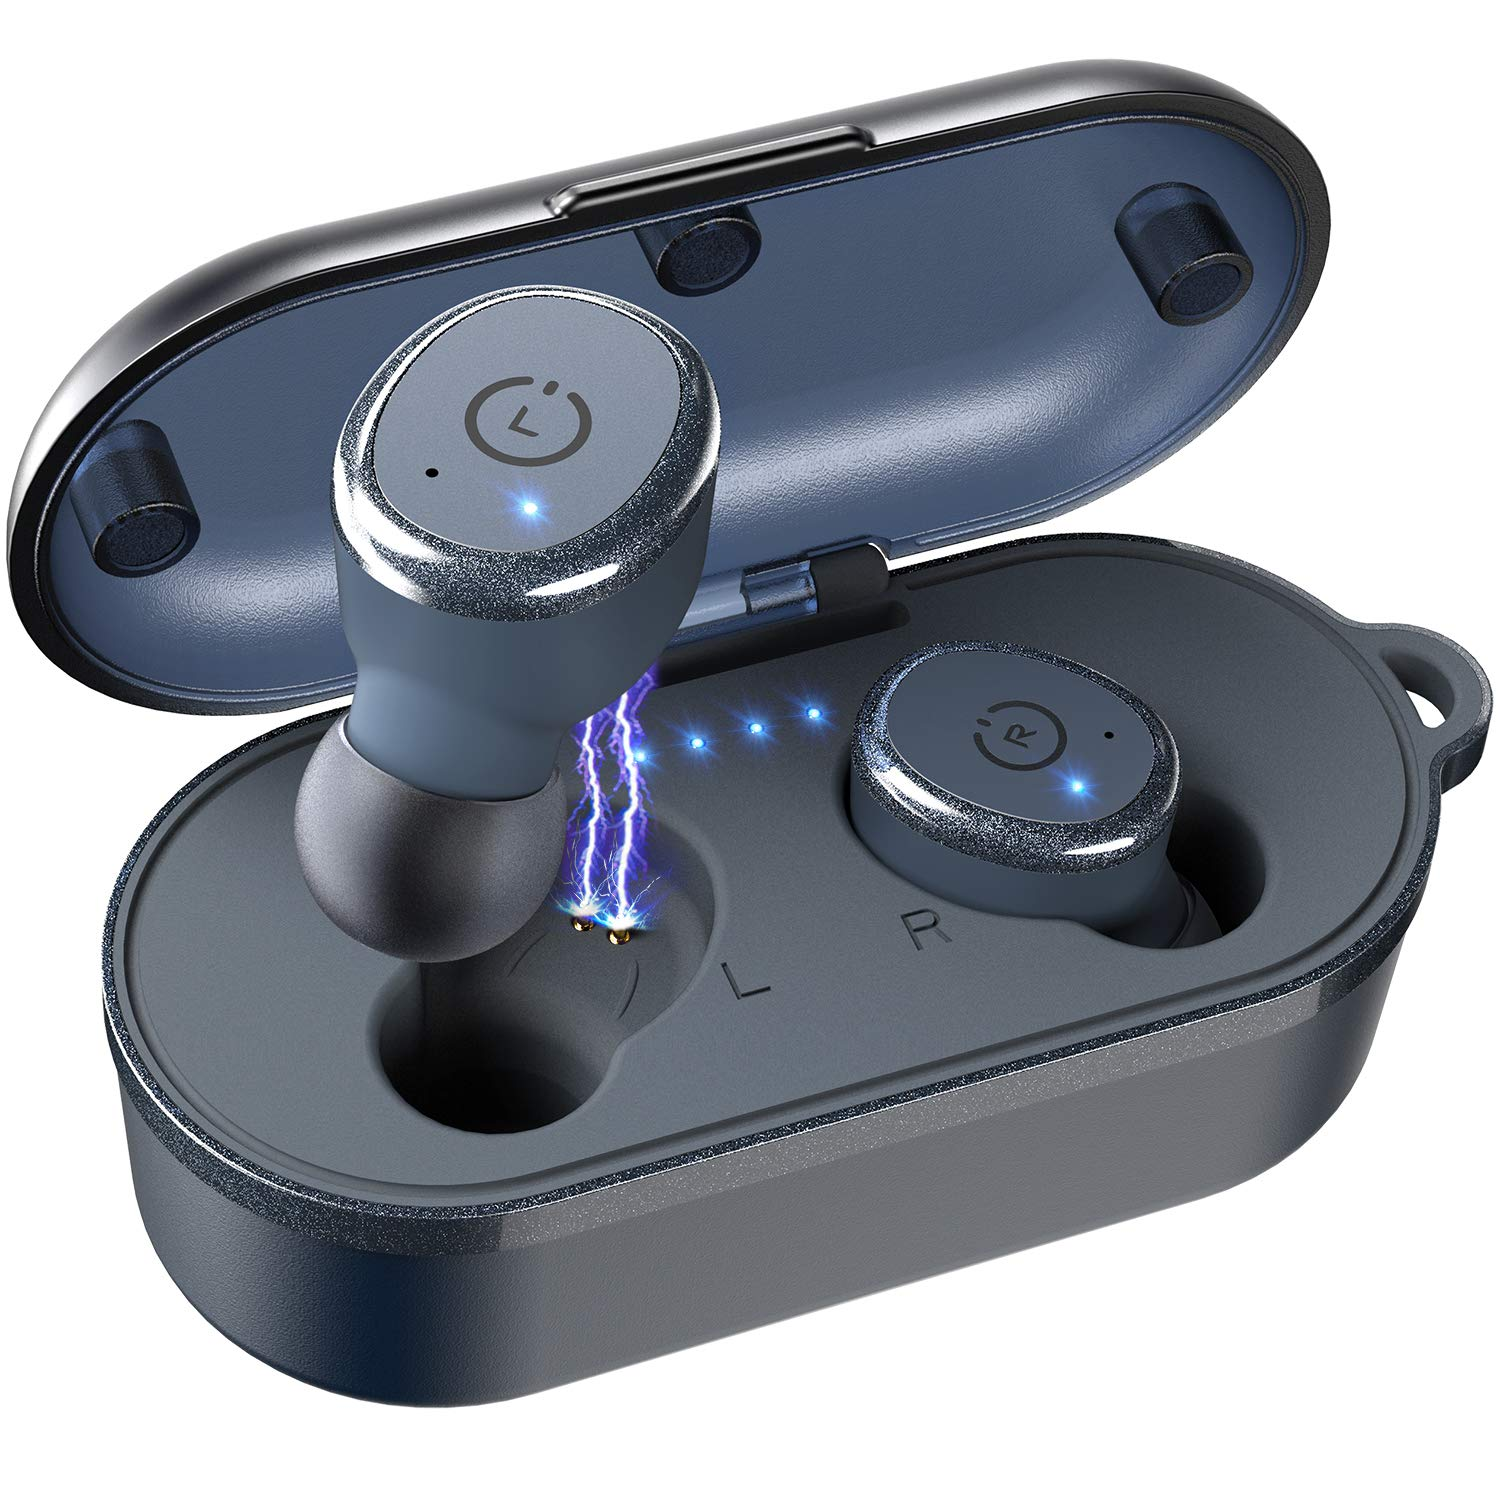 tozo-t10-bluetooth-50-wireless-earbuds-with-wireless-charging-case-ipx8-waterproof-tws-stereo-headphones-in-ear-built-in-mic-headset-premium-sound-with-deep-bass-for-sport-blue